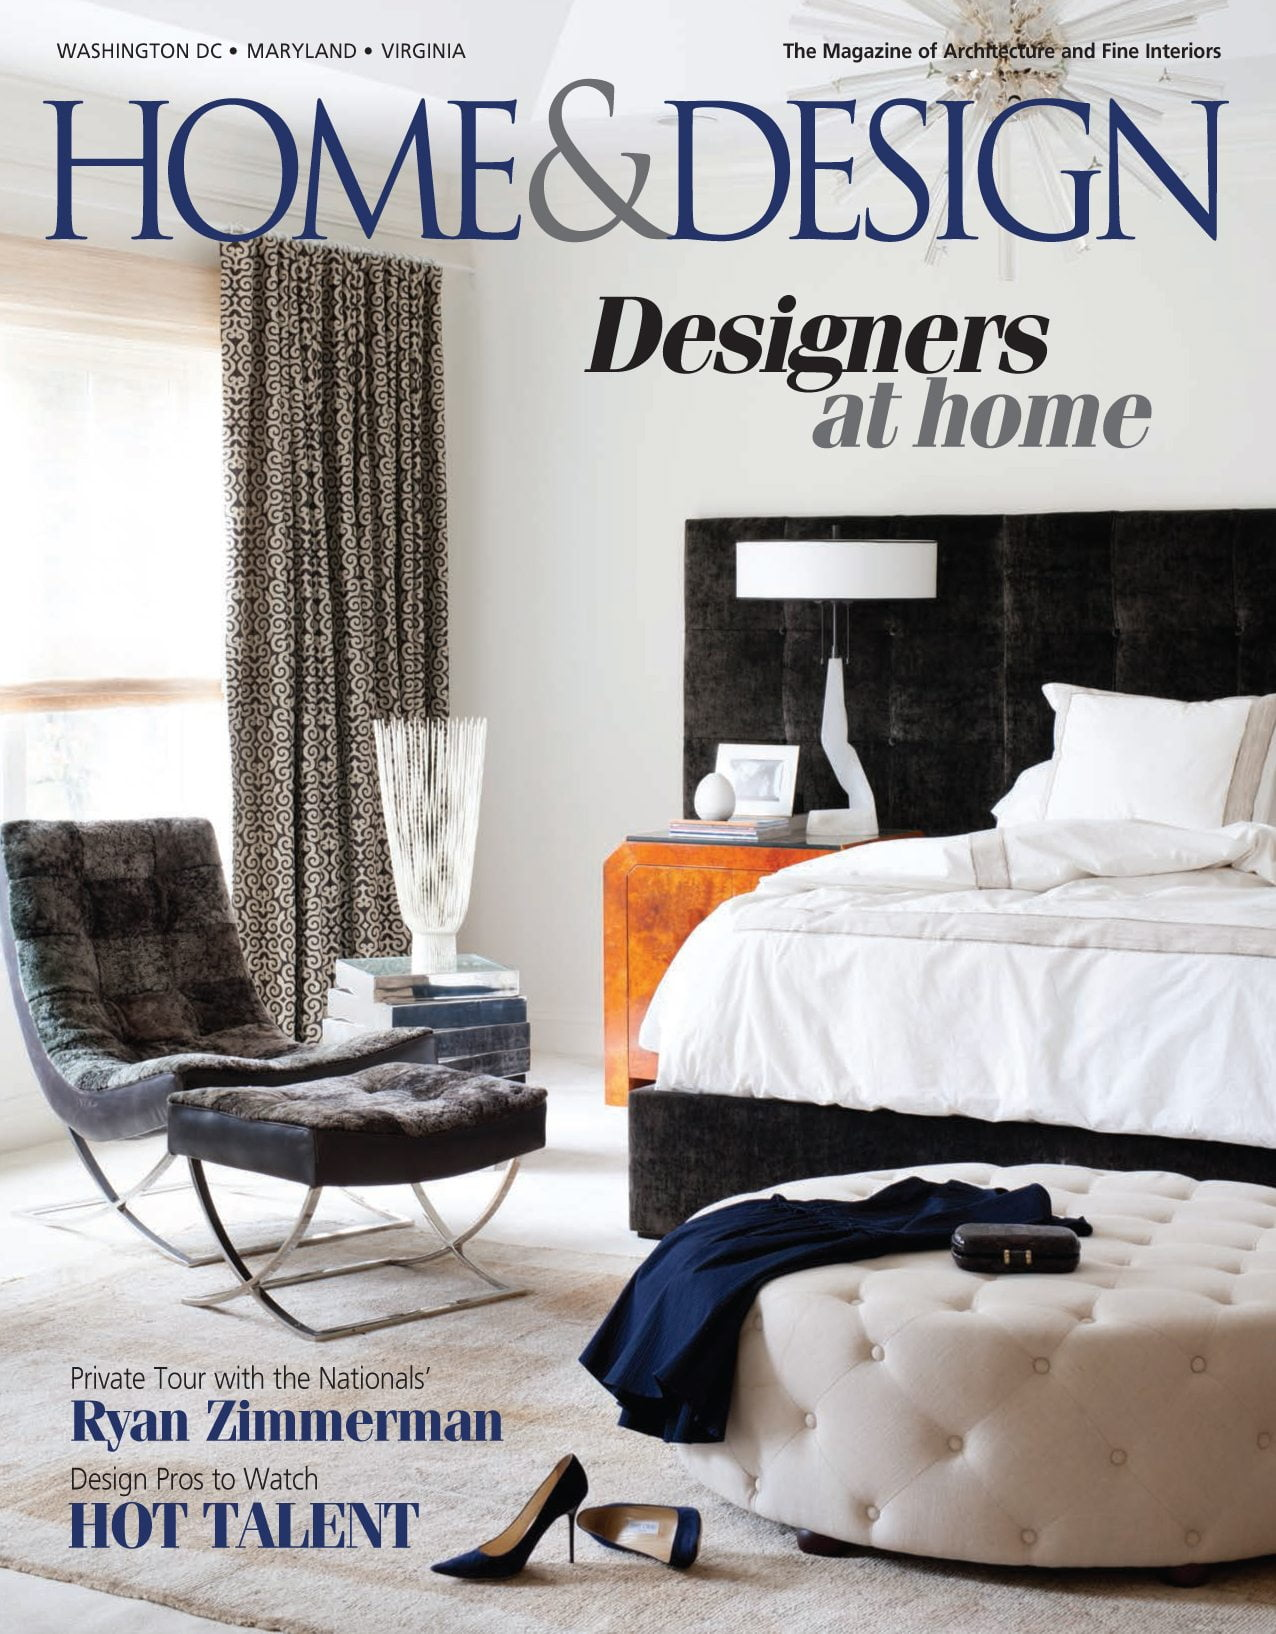 July August 2016 Archives Home & Design Magazine